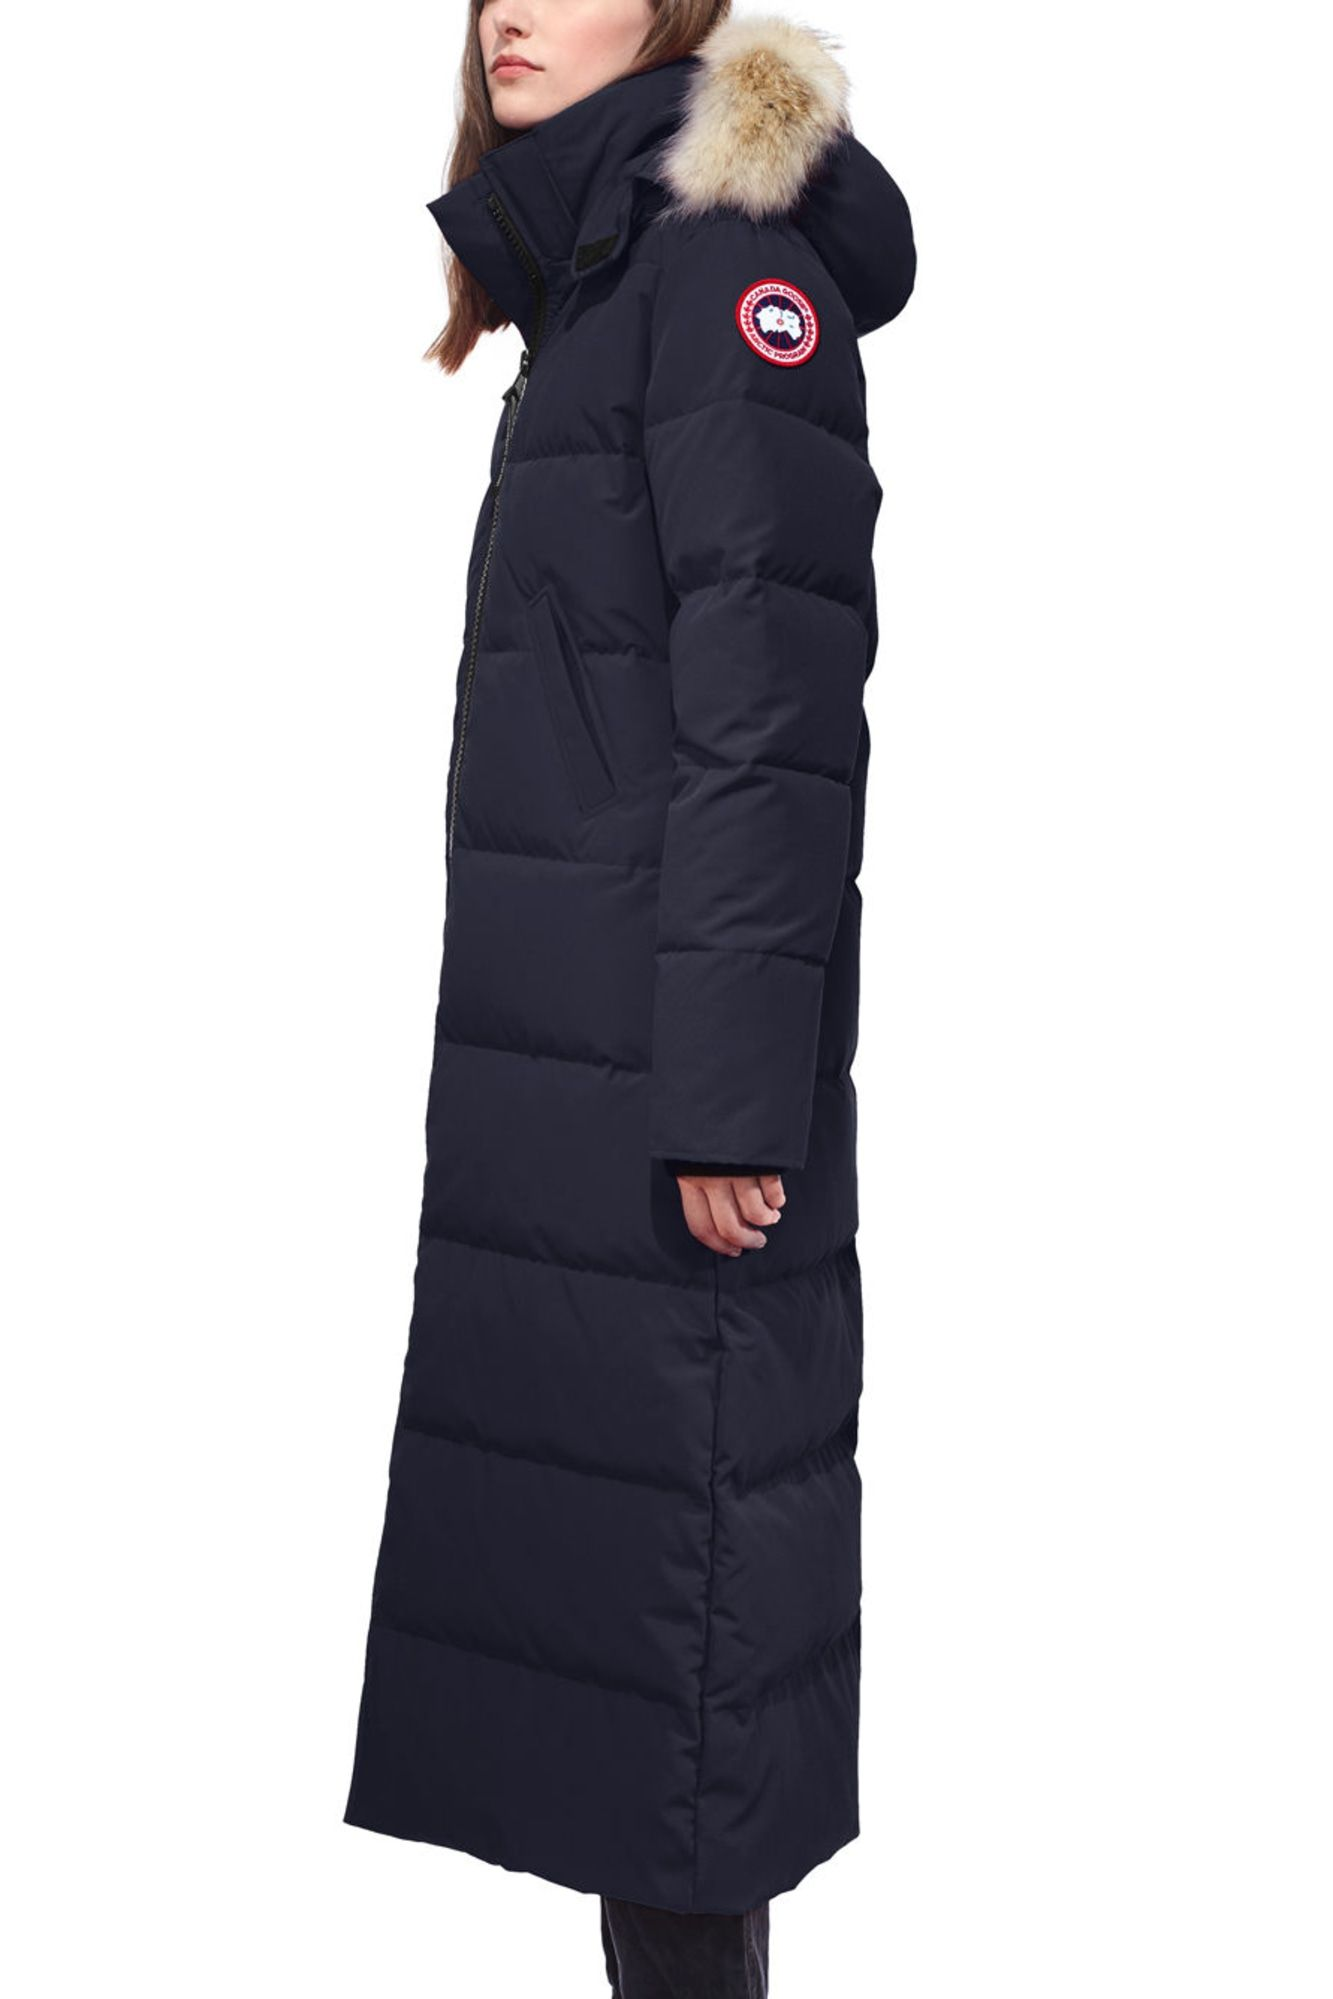 Mystique Parka Fusion Fit. Mystique Parka Fusion Fit Canada Goose Women ... 5a47abe5a7